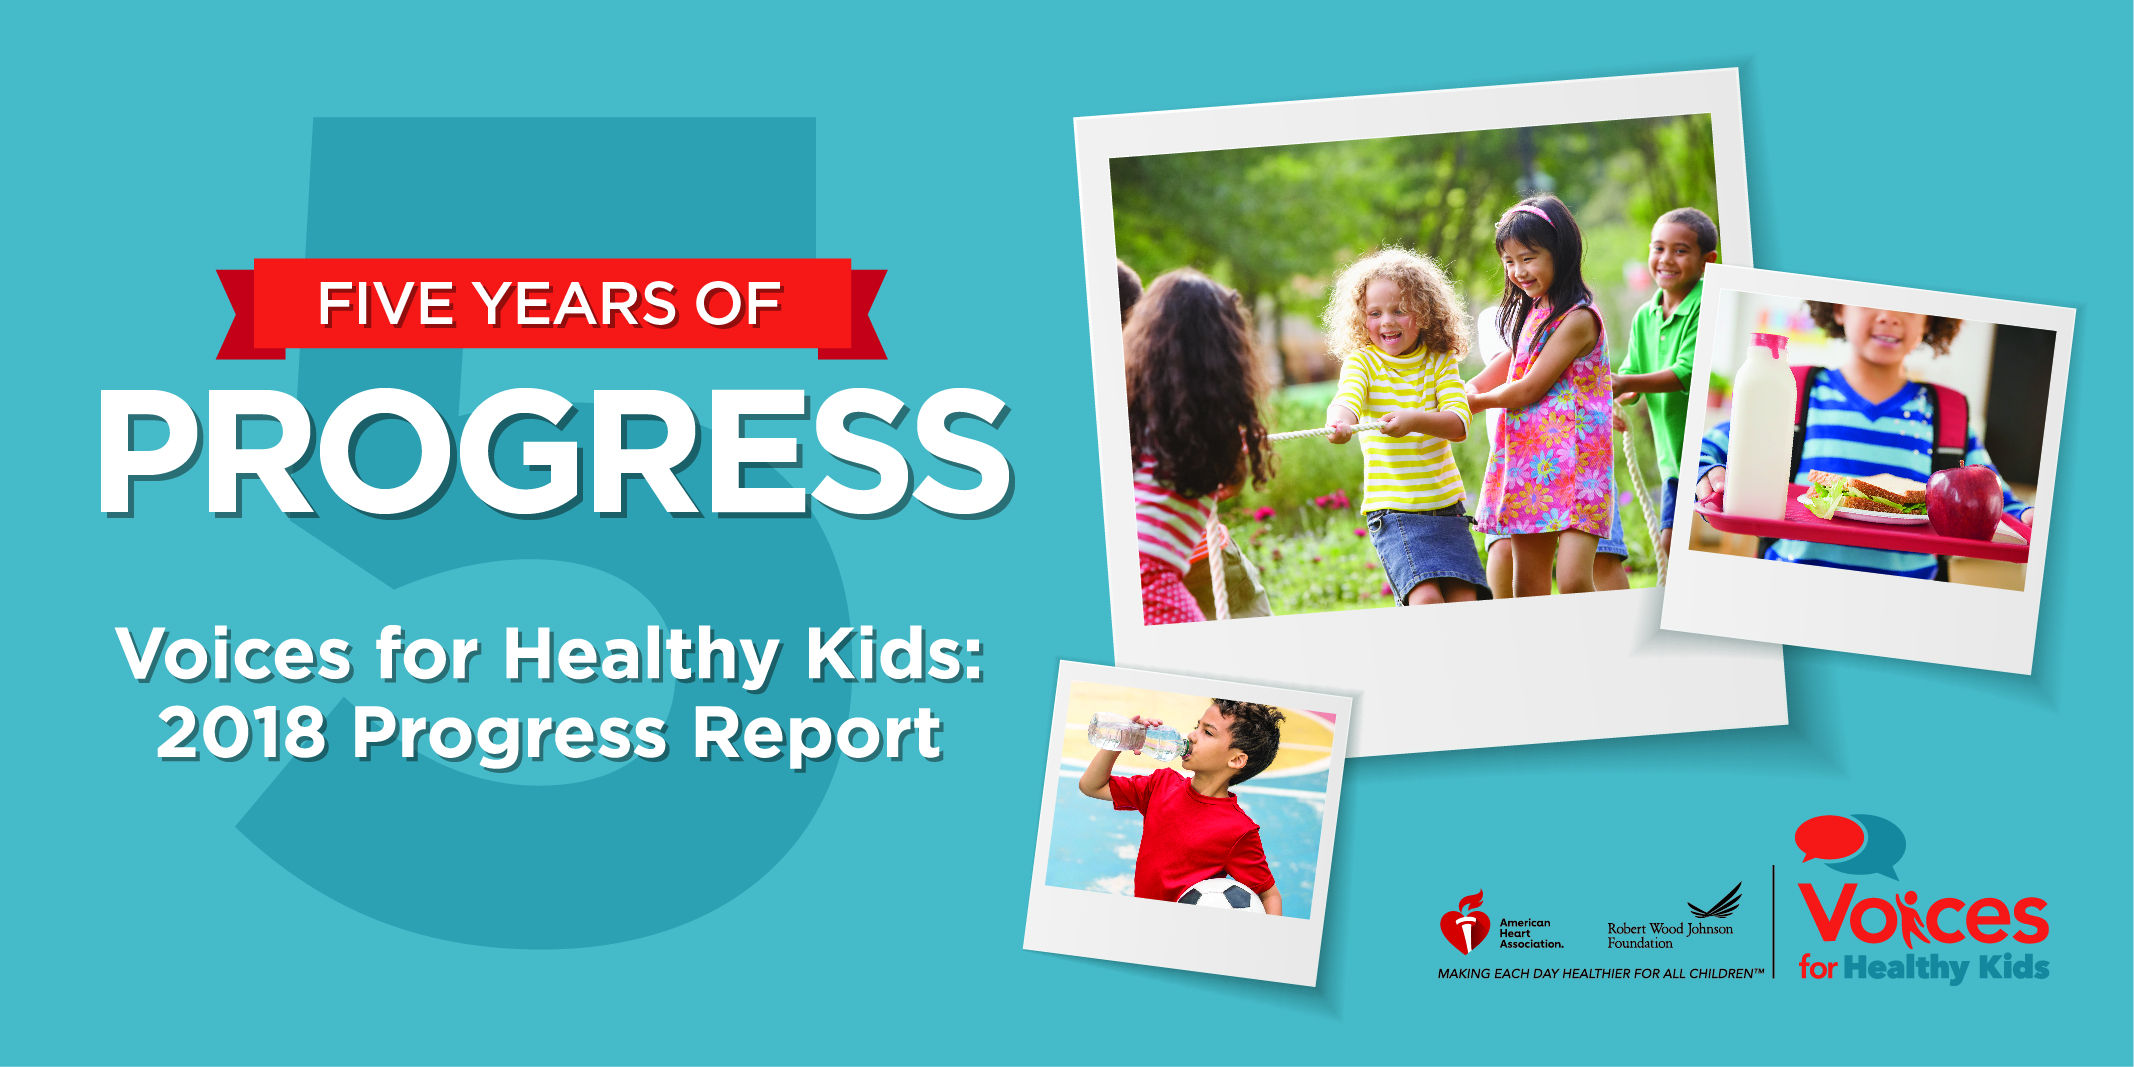 Voices for Healthy Kids 2018 Progress Report: A Look Back at Five Years of Progress of Voices for Healthy Kids